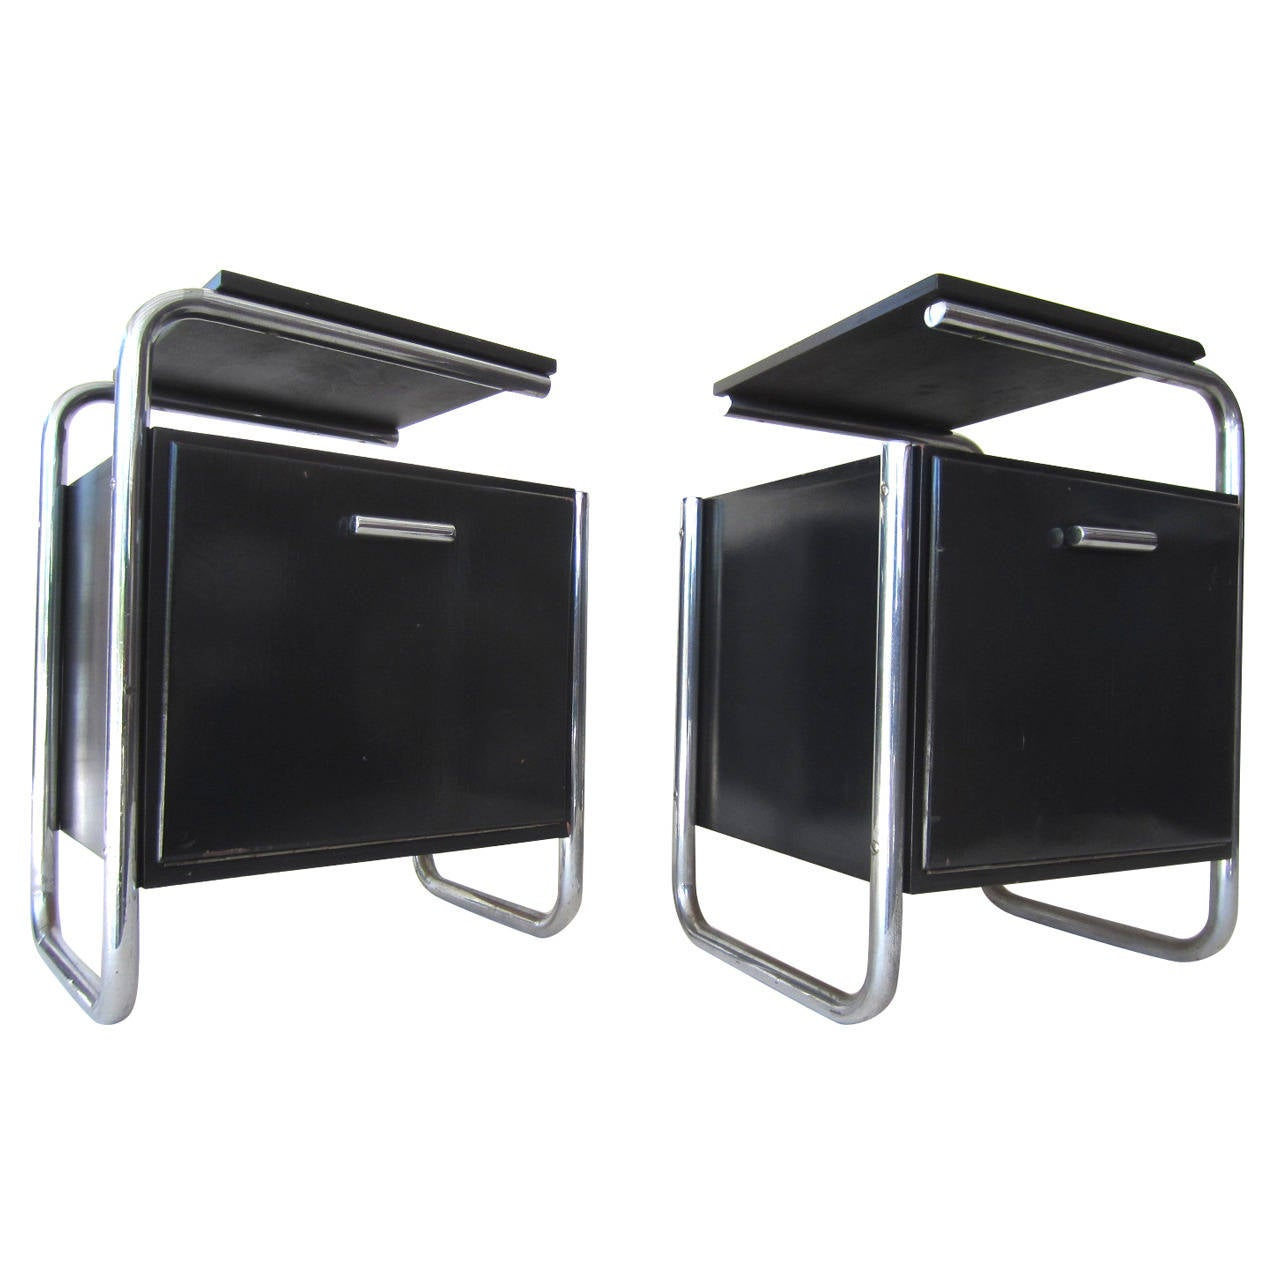 Bauhaus Marcel Breuer Pair of Side Tables circa 1930 Germany For Sale at 1stdibs